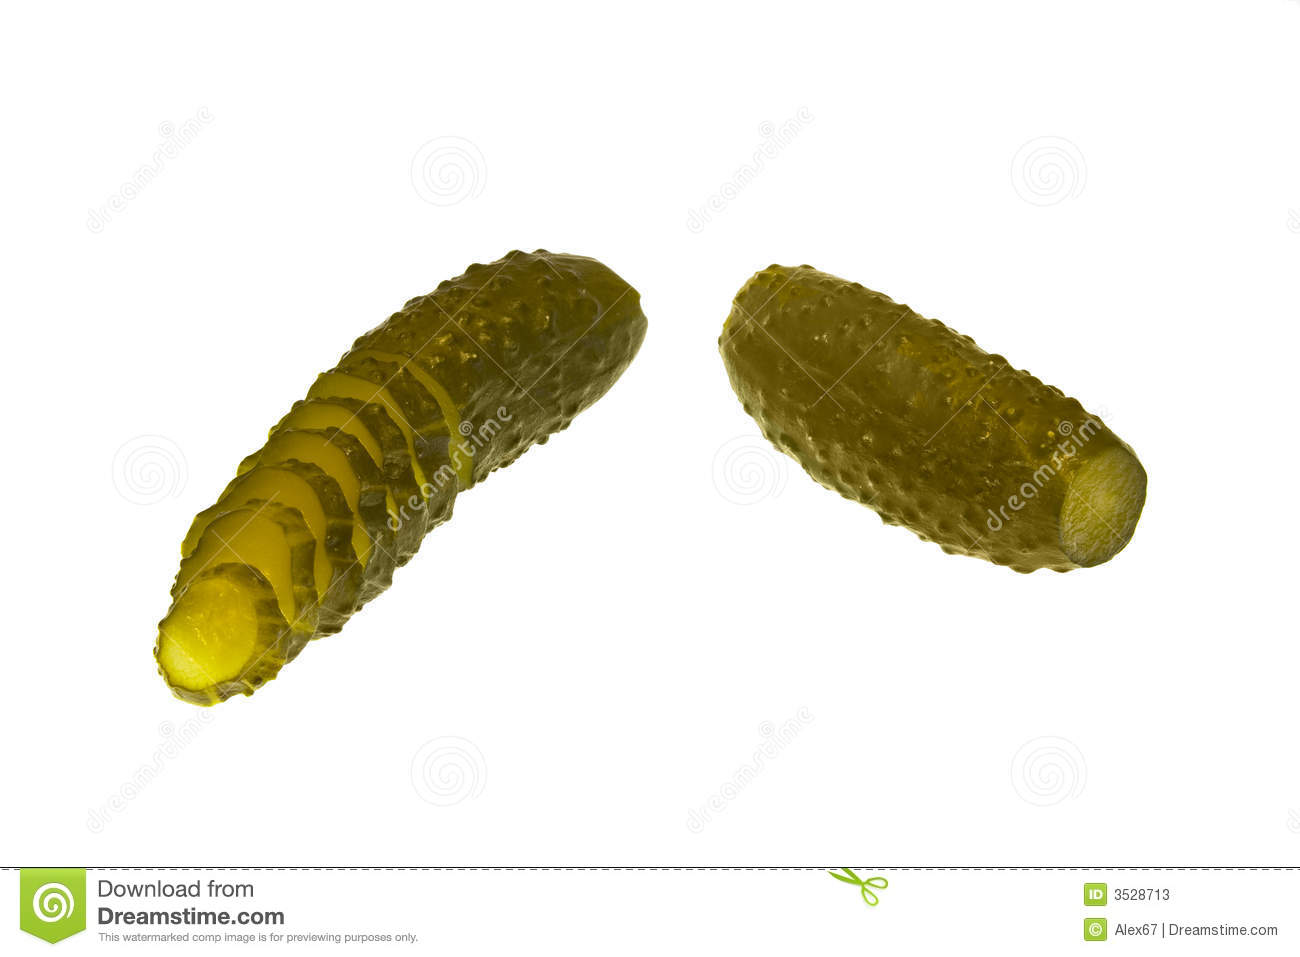 Pickle manufacturing business plan